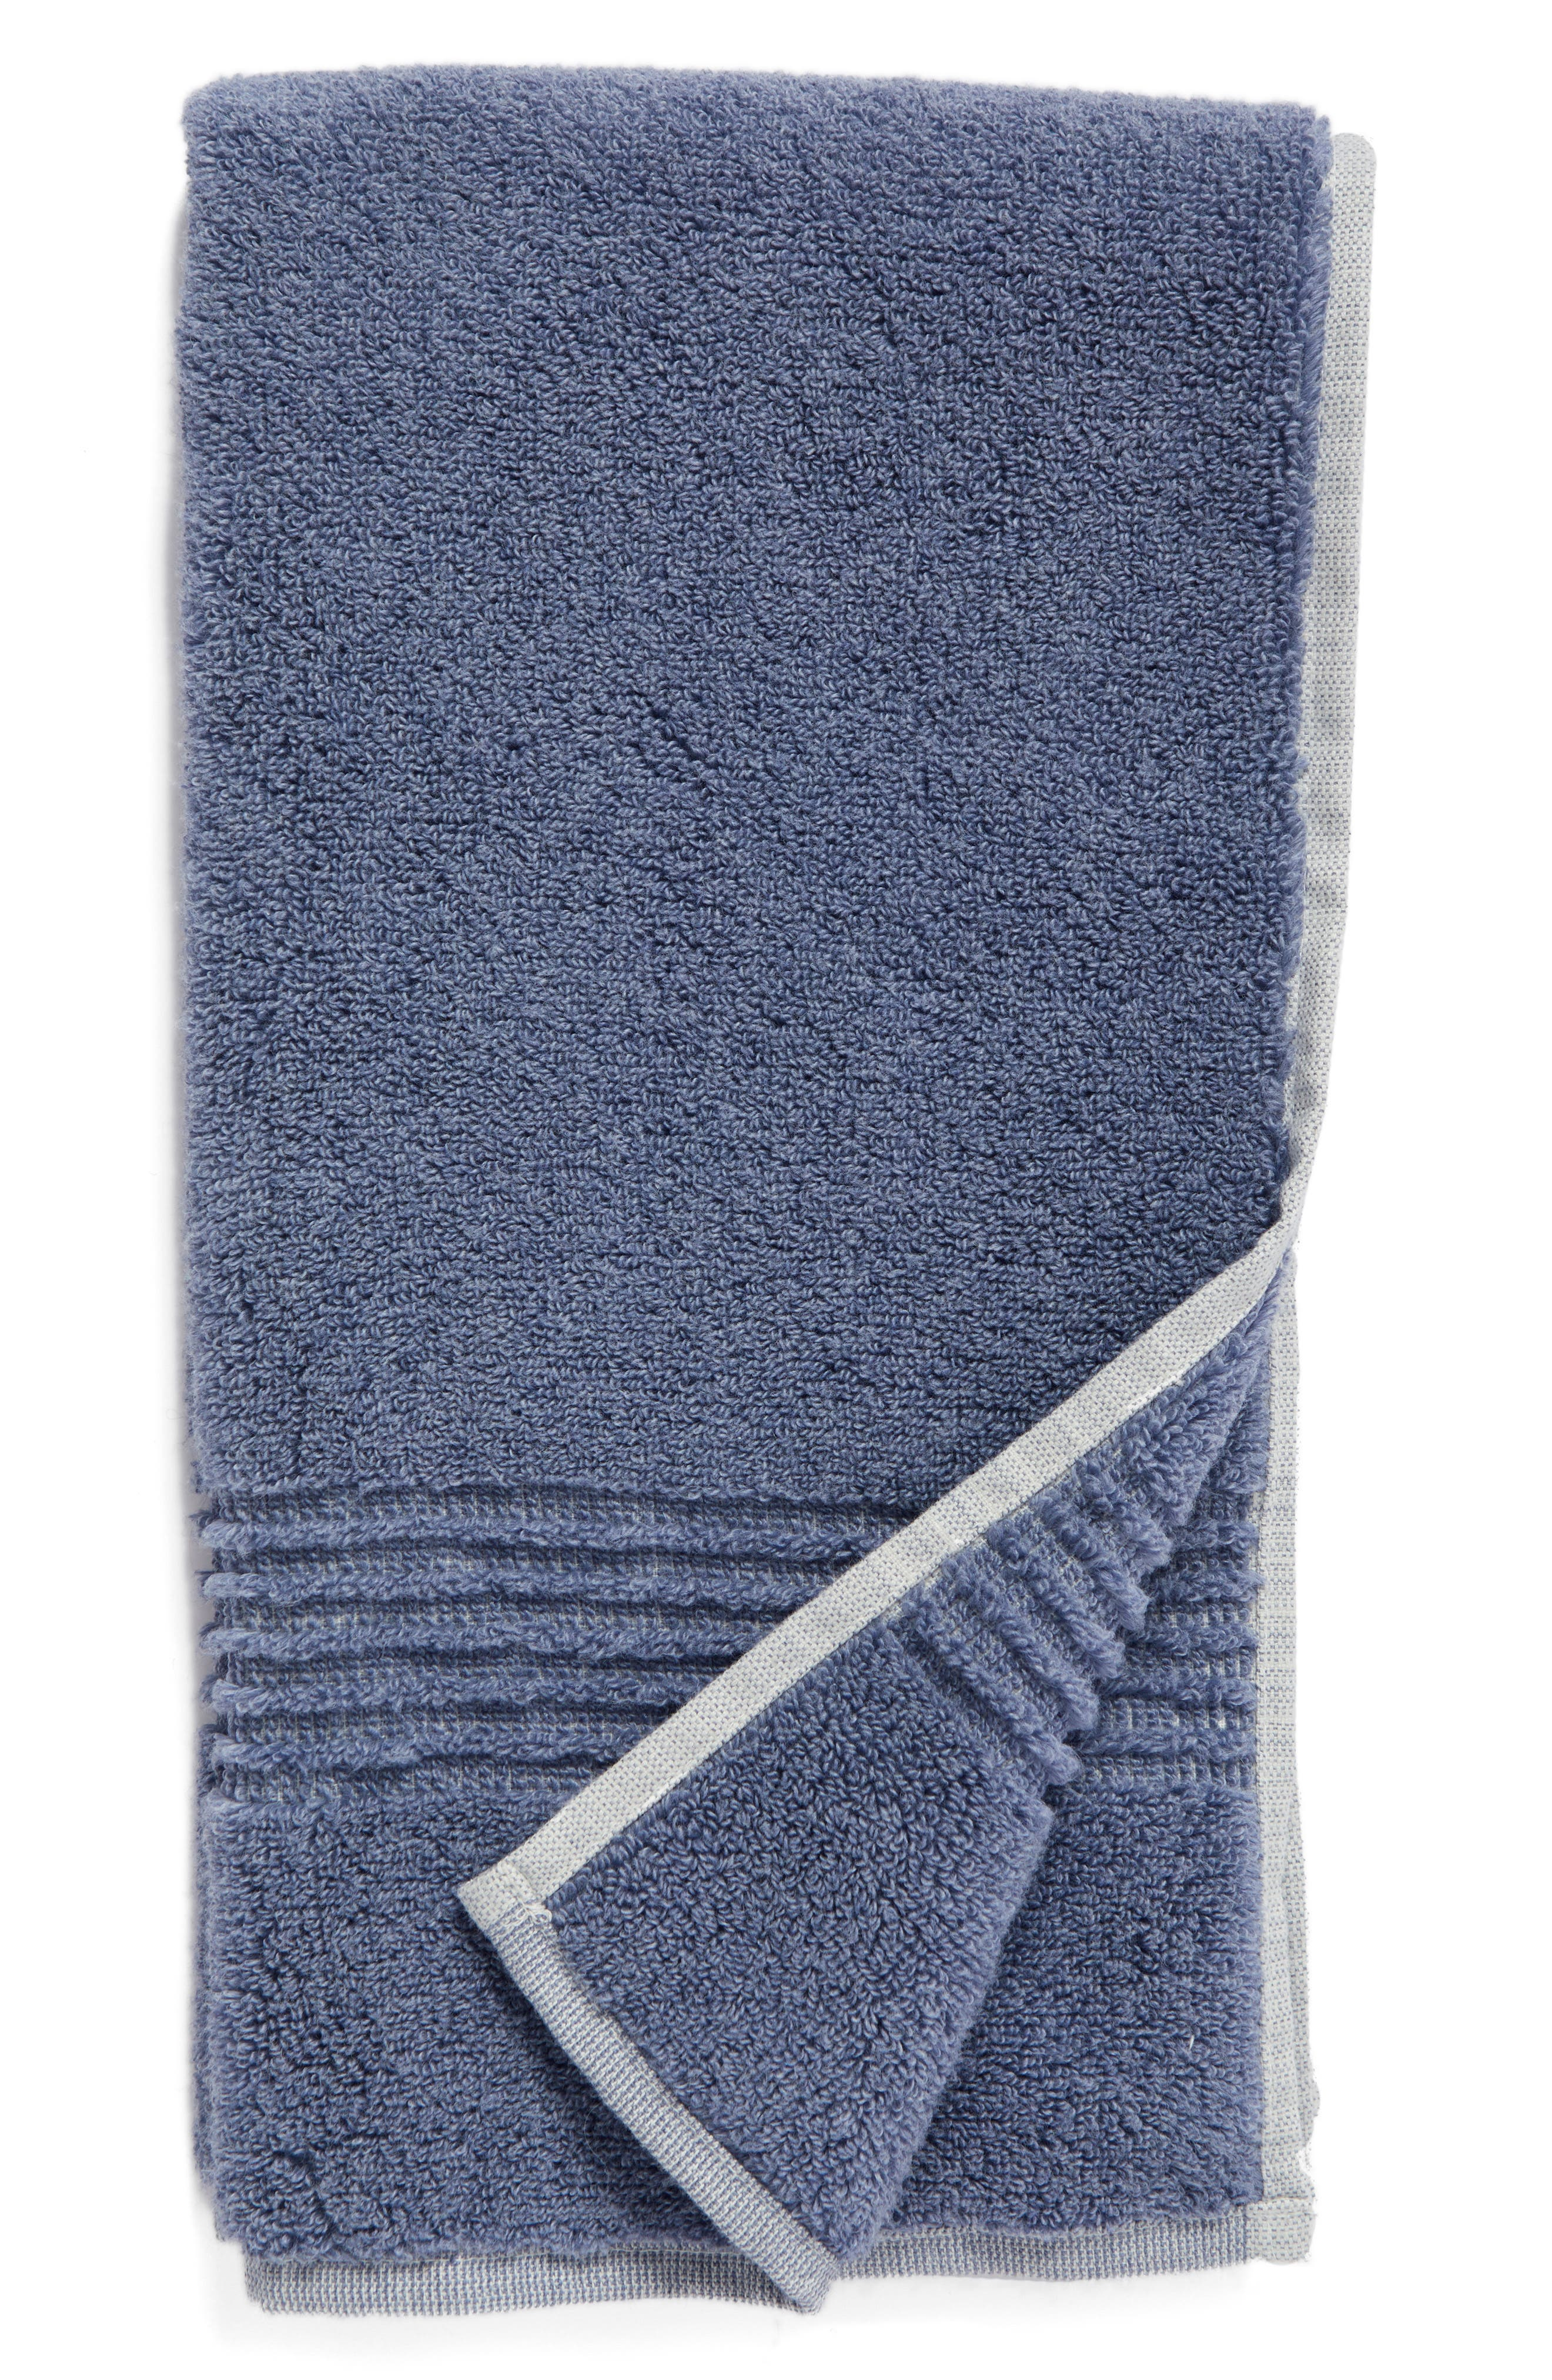 Alternate Image 1 Selected - Nordstrom at Home Organic Hydrocotton Heathered Hand Towel (2 for $32)